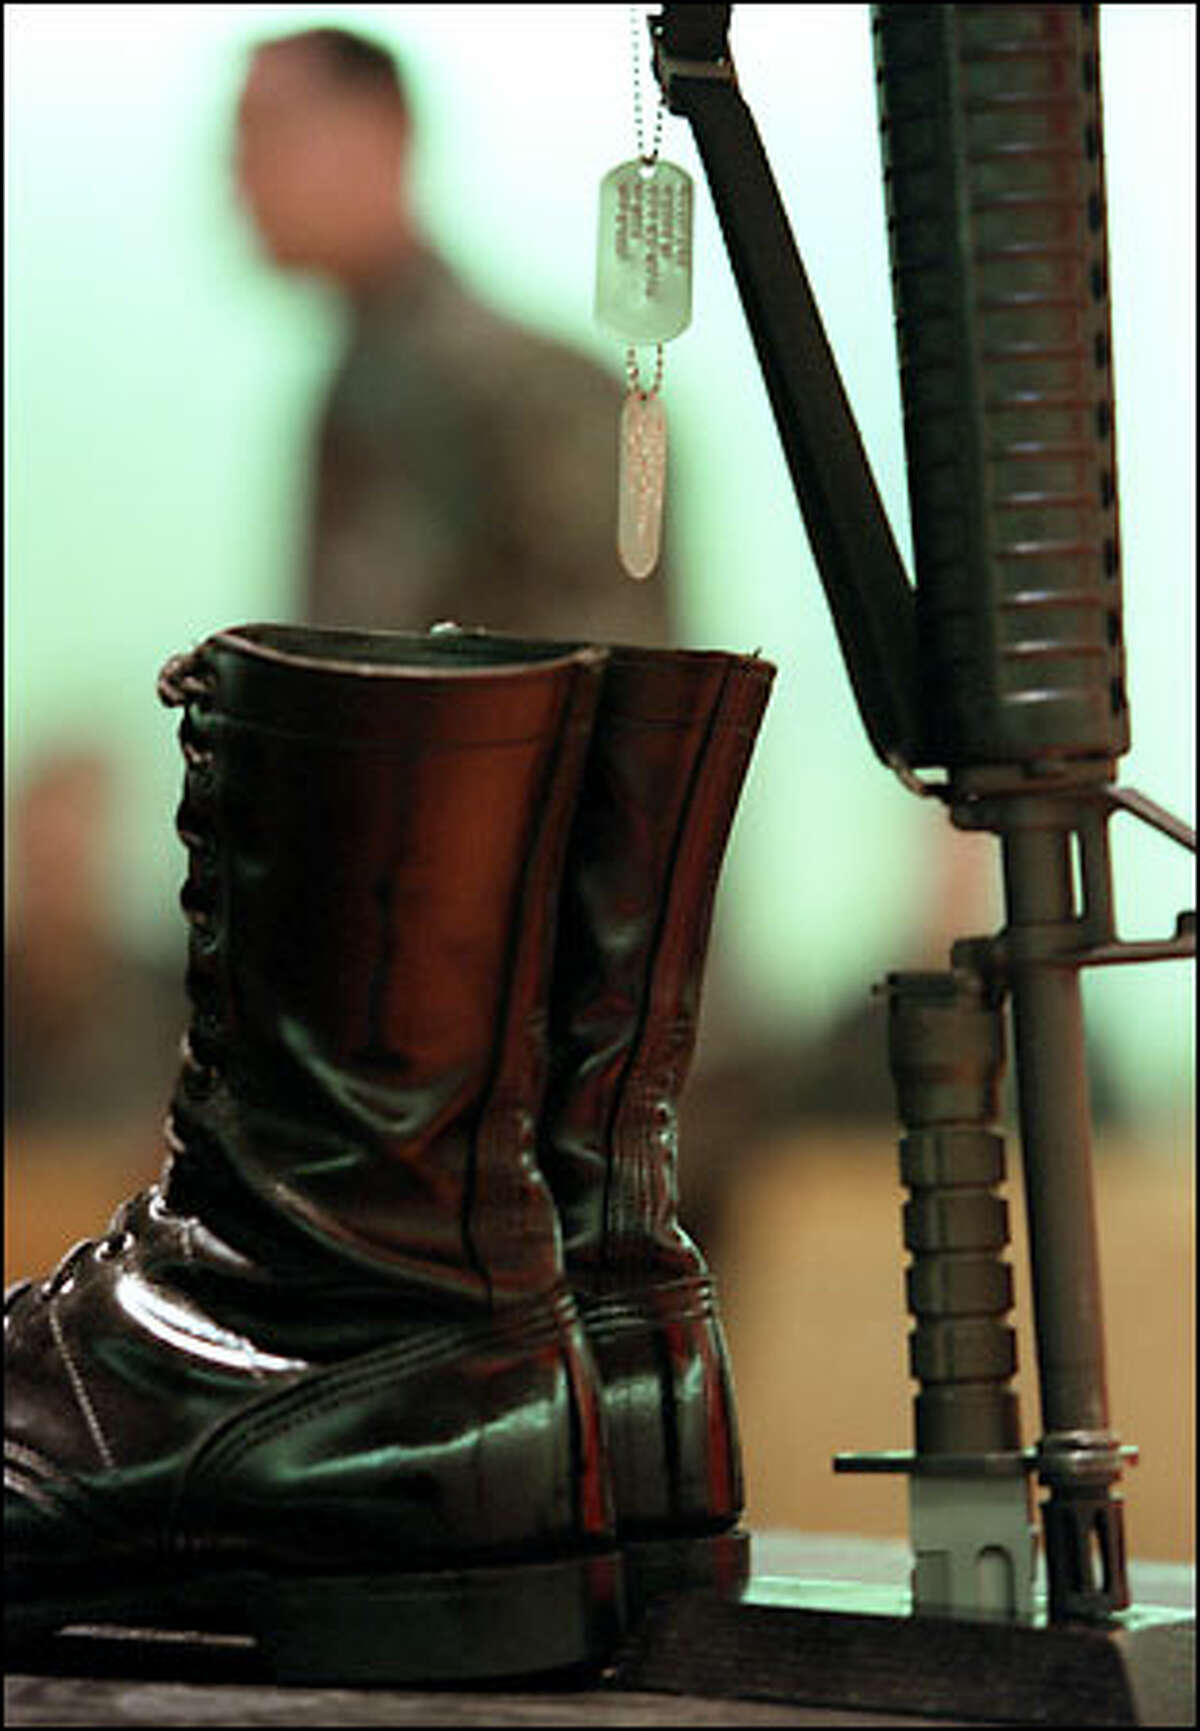 Inside the Soldiers' Chapel at Fort Lewis, the symbolic boots, dog tags and inverted rifle with helmet form the centerpiece at a memorial yesterday for 29-year-old Army Spc. specialist Jason Wildfong, who was one of six military observers, including five Americans, killed by friendly fire during a training accident in Kuwait on Monday.